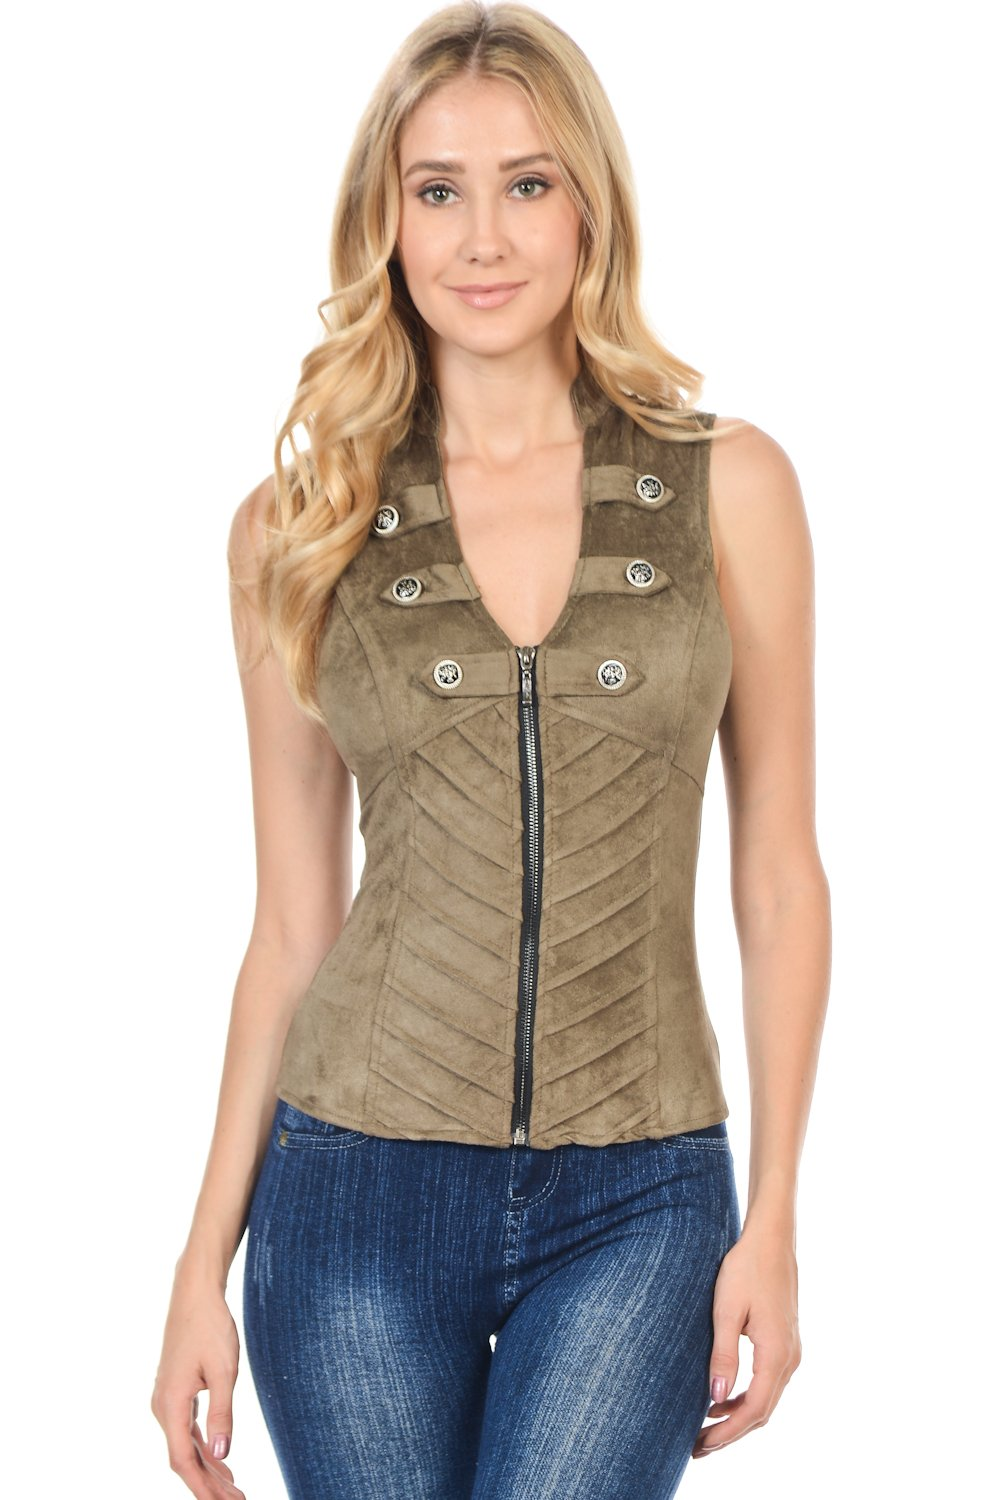 Lydia U.S.A. Sexy Suede Spandex Military Look Club Wear Rave Vest Jacket Top (Medium, Olive) by Lydia USA